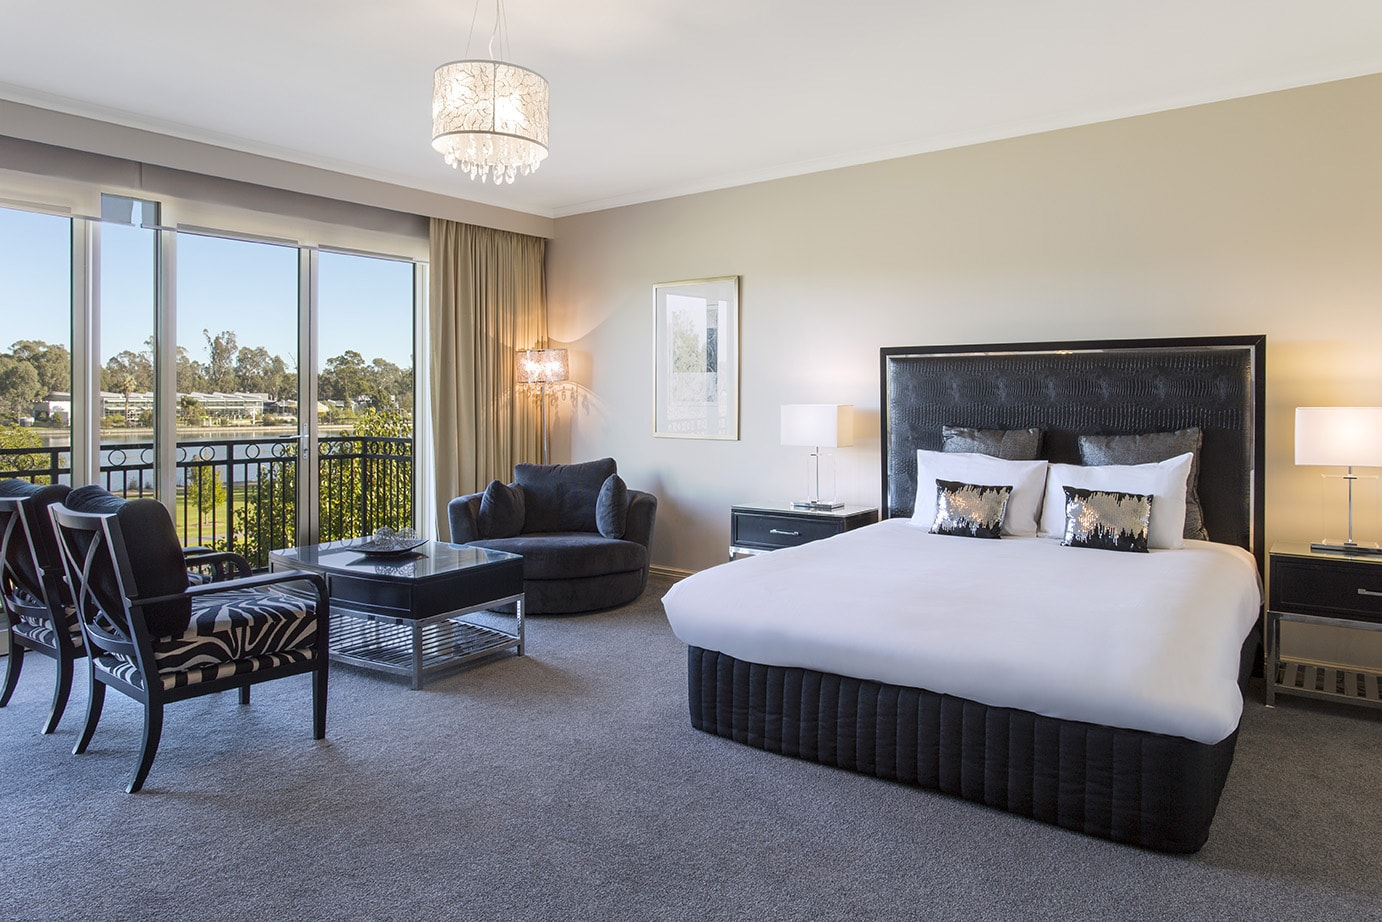 best-western-plus-the-carrington-shepparton-hotel-accommodation-executive-suite-2.jpg